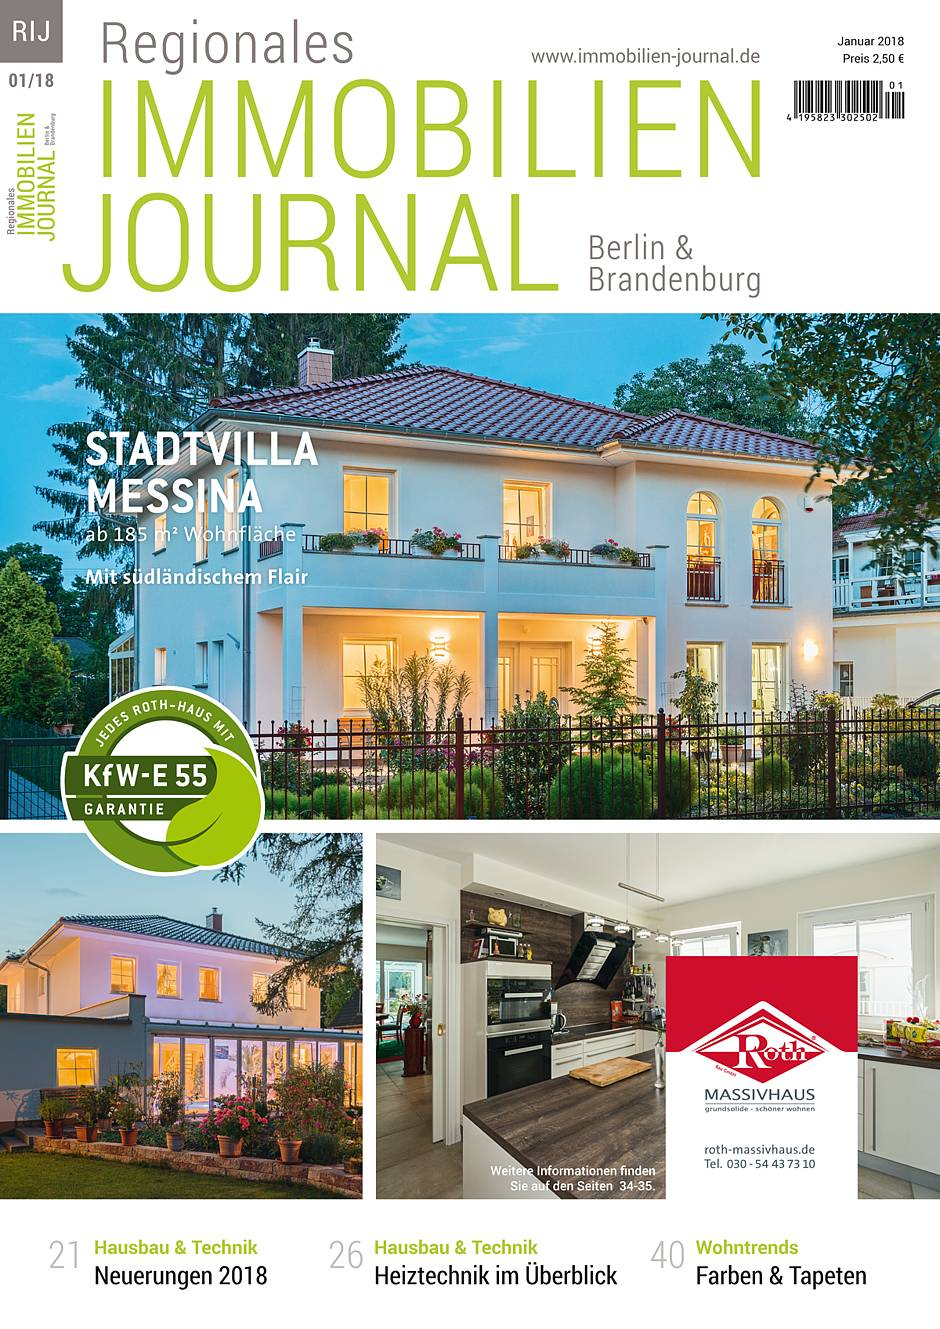 Regionales Immobilien Journal Berlin & Brandenburg Januar 2018